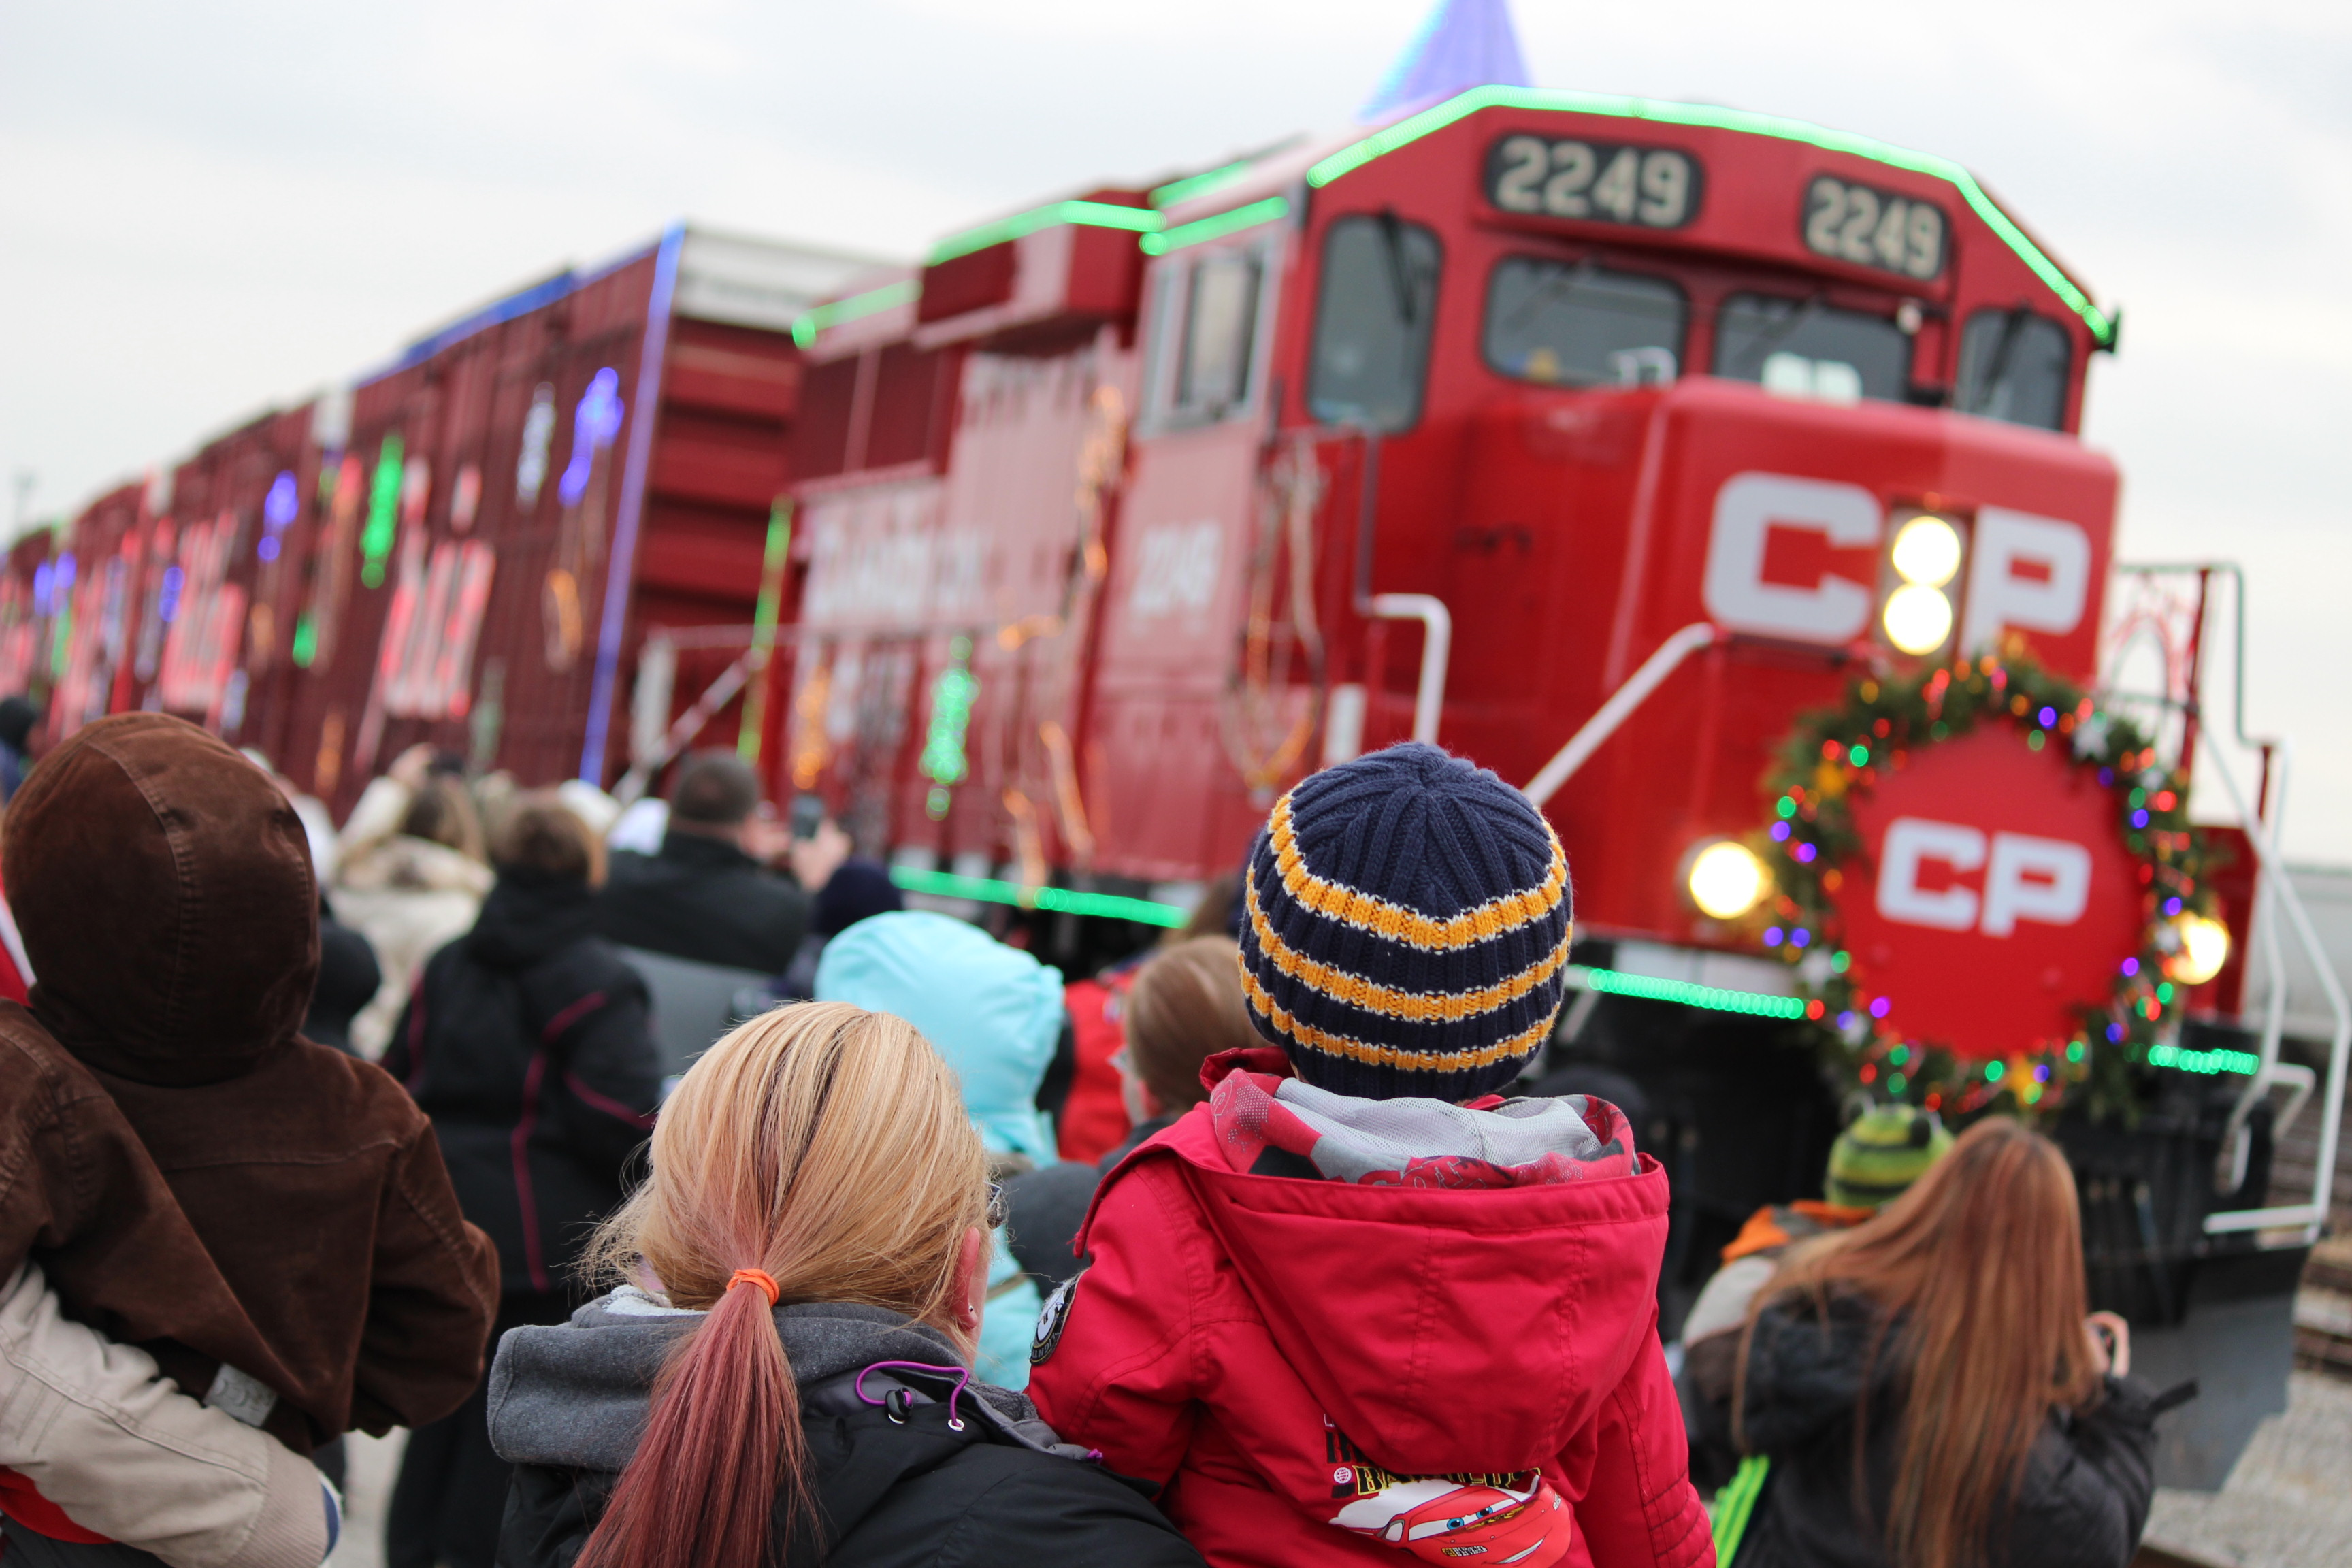 Hundreds gather in Windsor to watch as the CP Holiday Train pulls in. (Photo by Jason Viau)